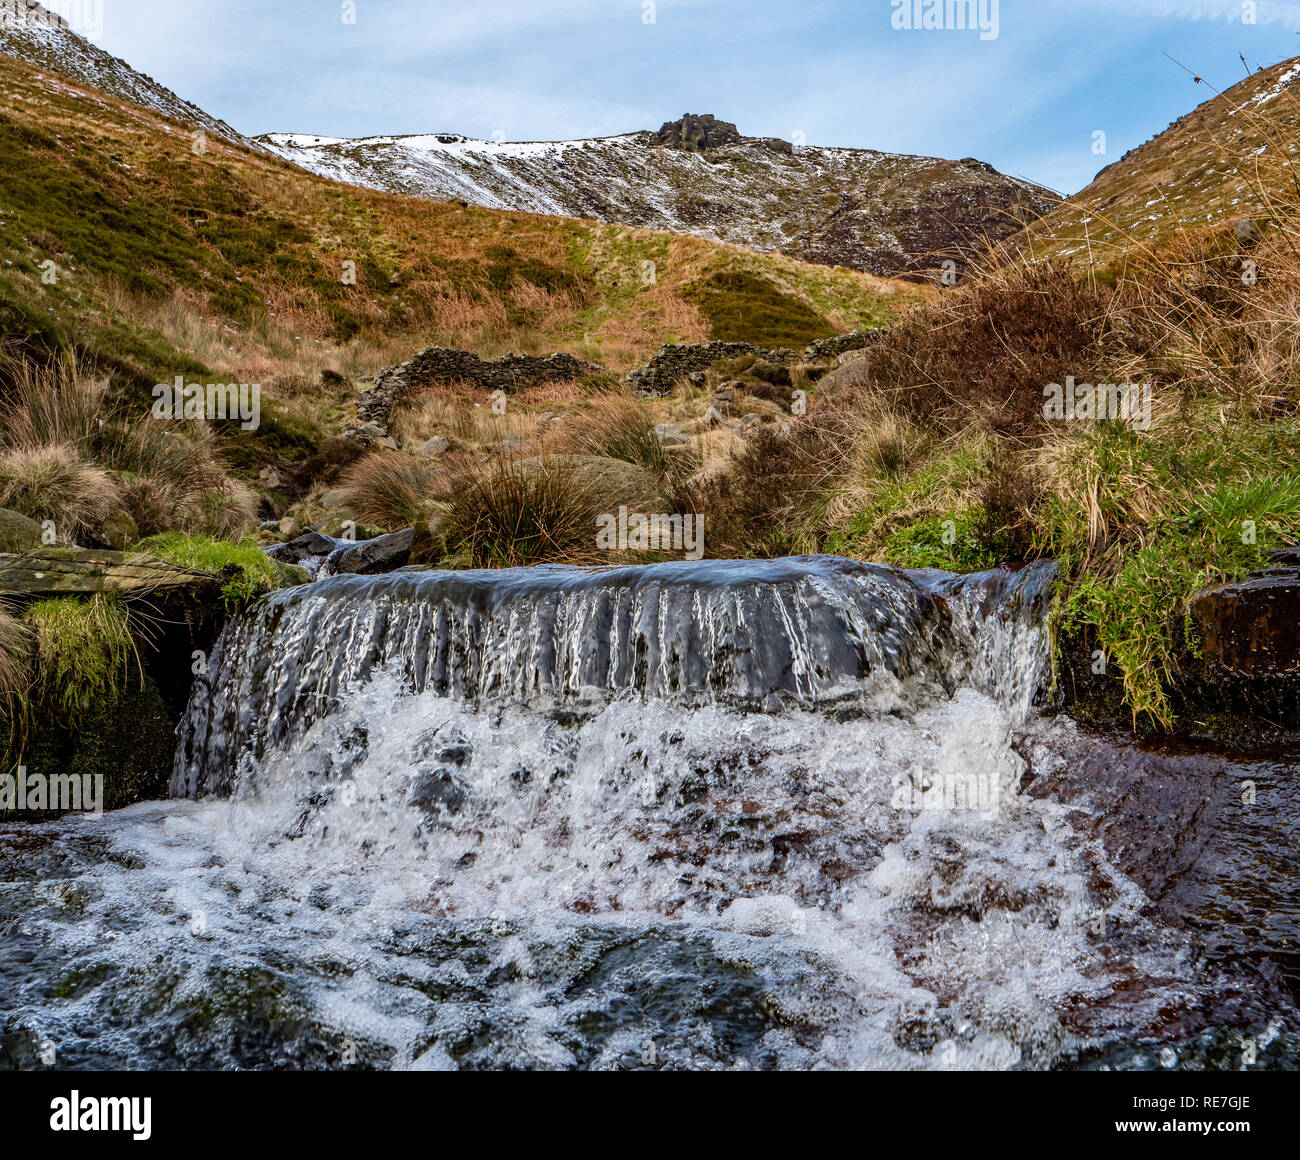 Crowden Tower on the edge of Kinder Scout in the Derbyshire Peak District from the rushing river of Crowden Brook - Stock Image